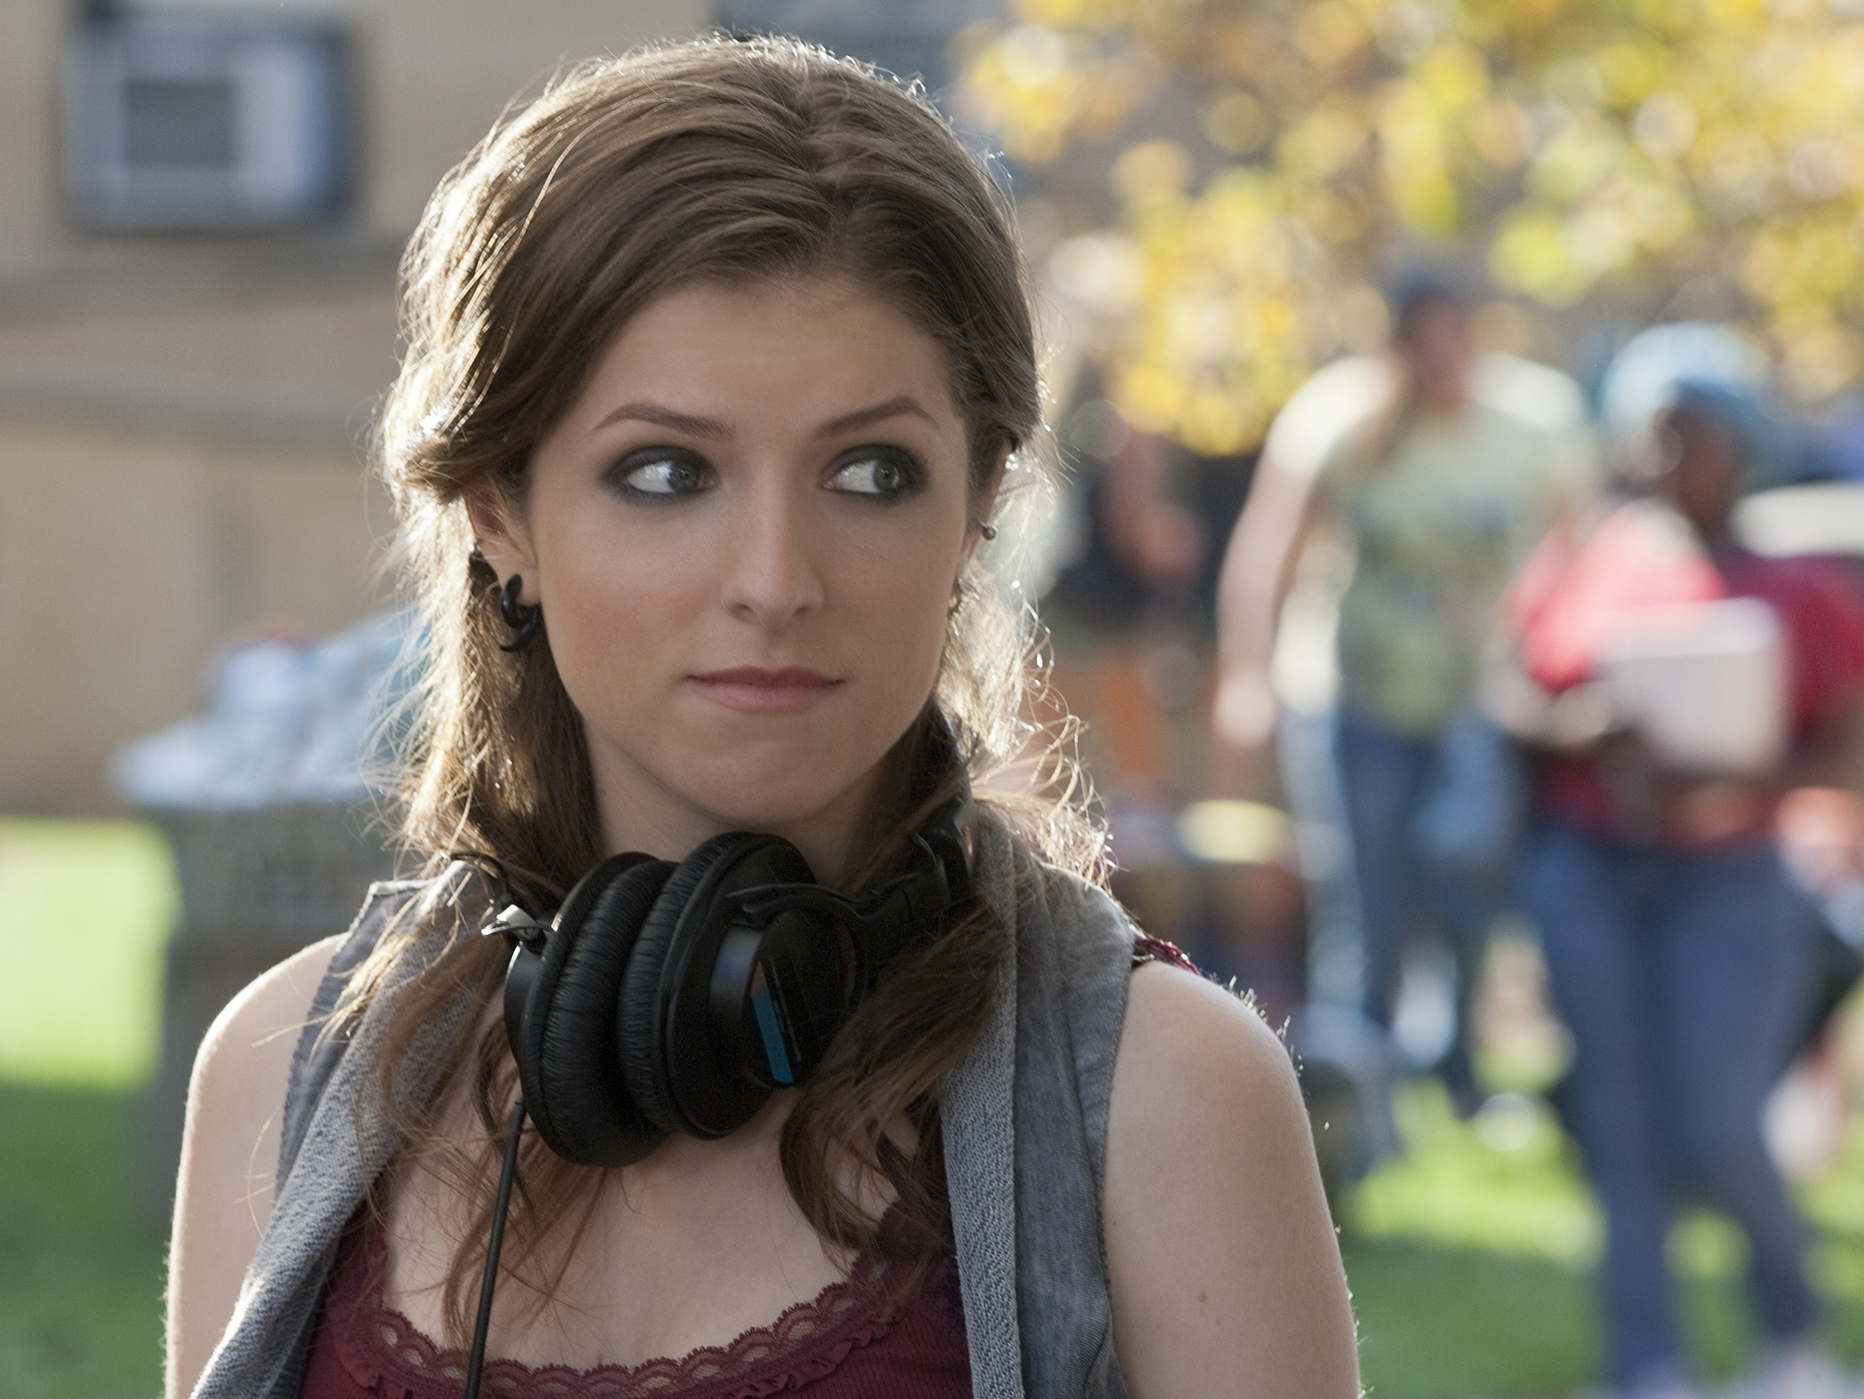 'Pitch Perfect' Review: Like 'Glee' Sans Politics